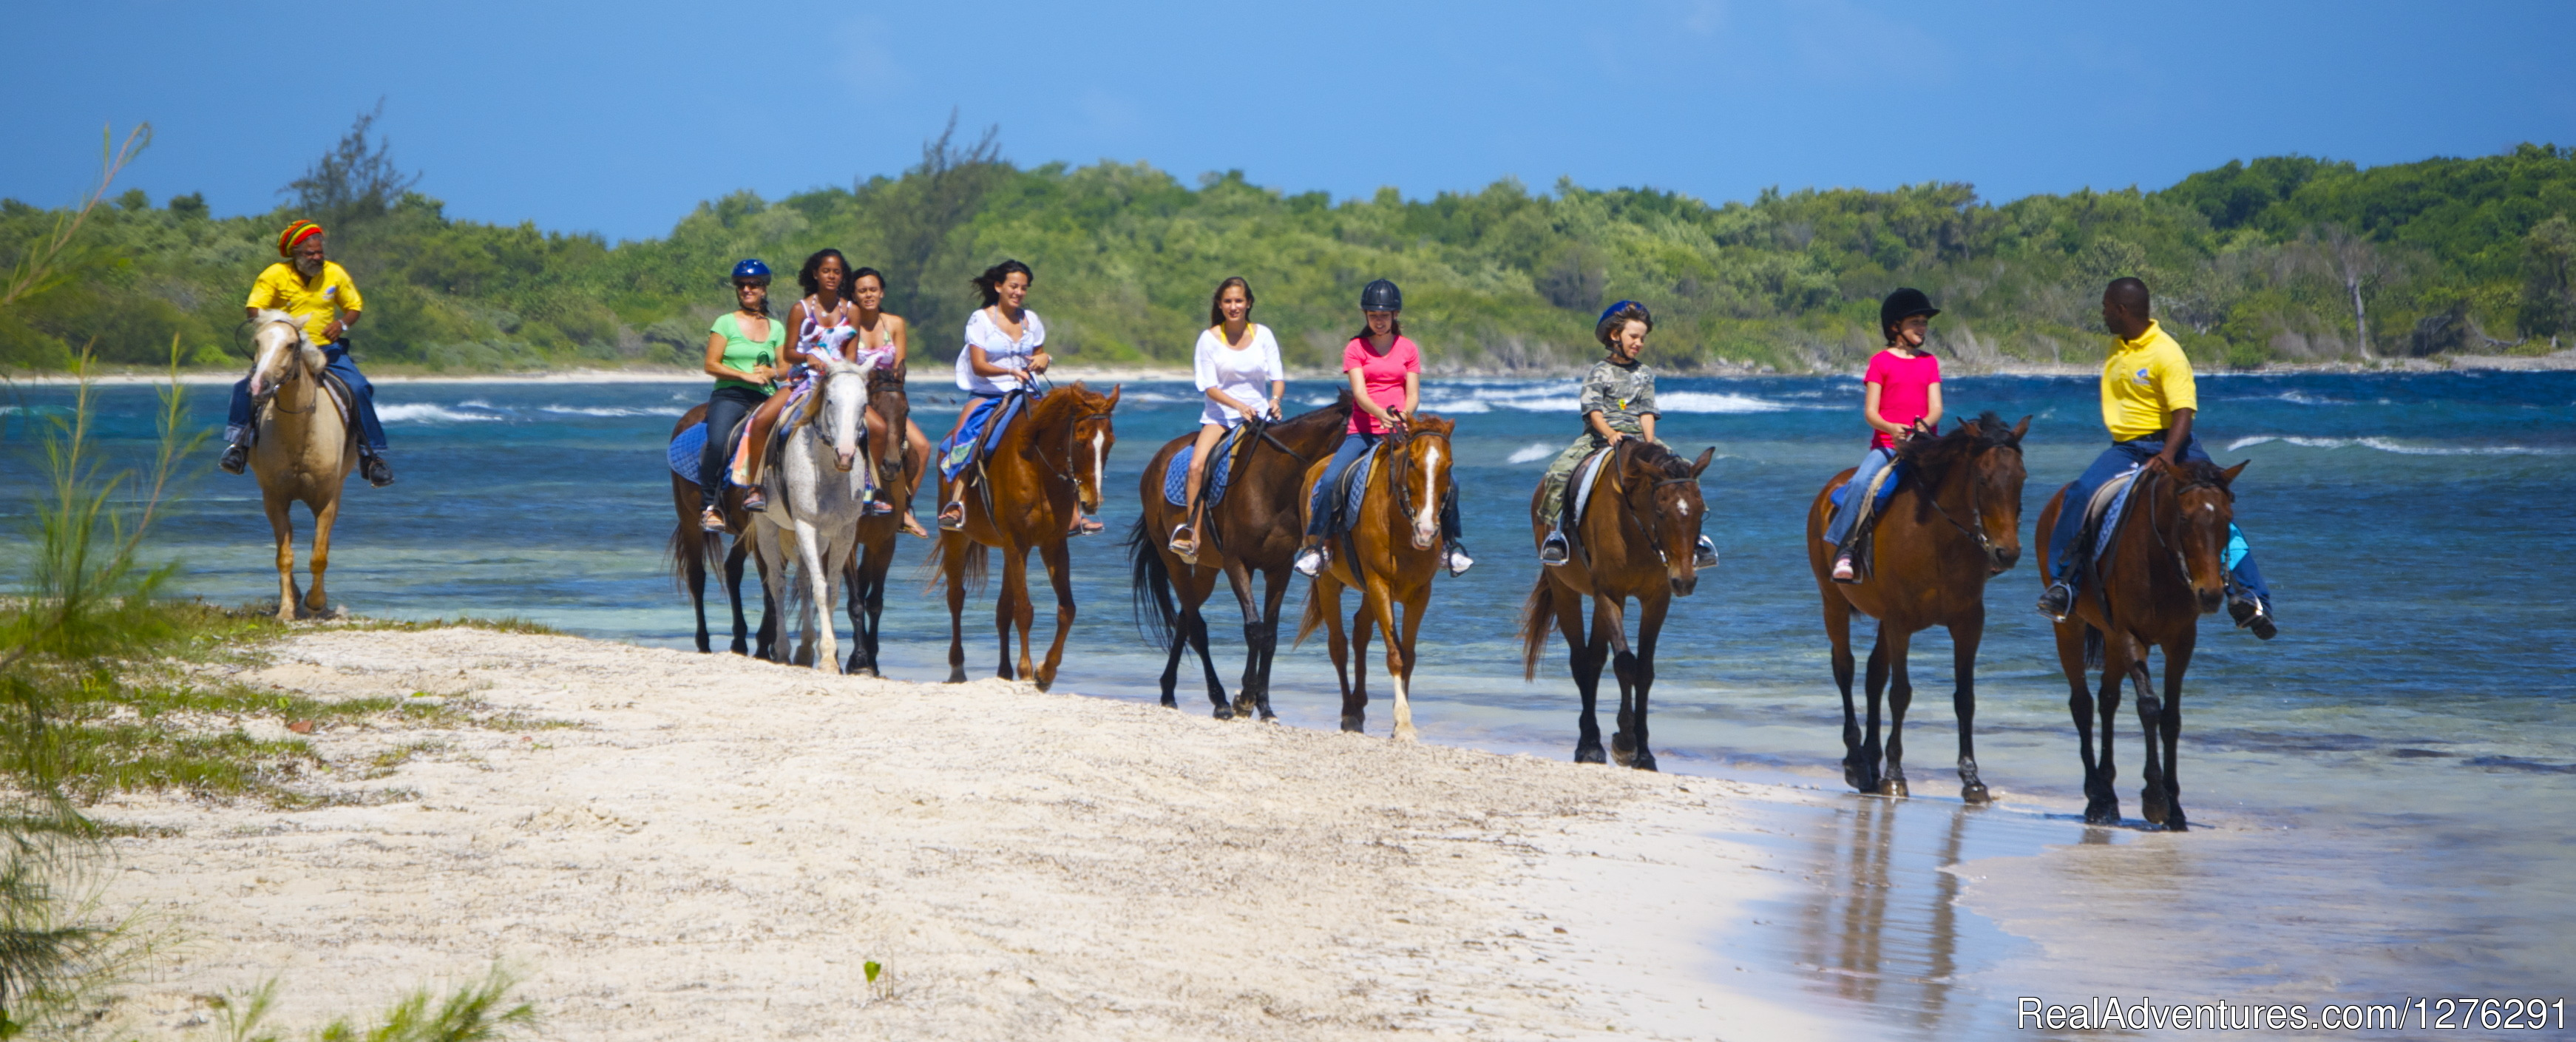 Beach Ride | Image #2/2 | Braco Stables, Jamaica Horseback Ride n' Swim Tour